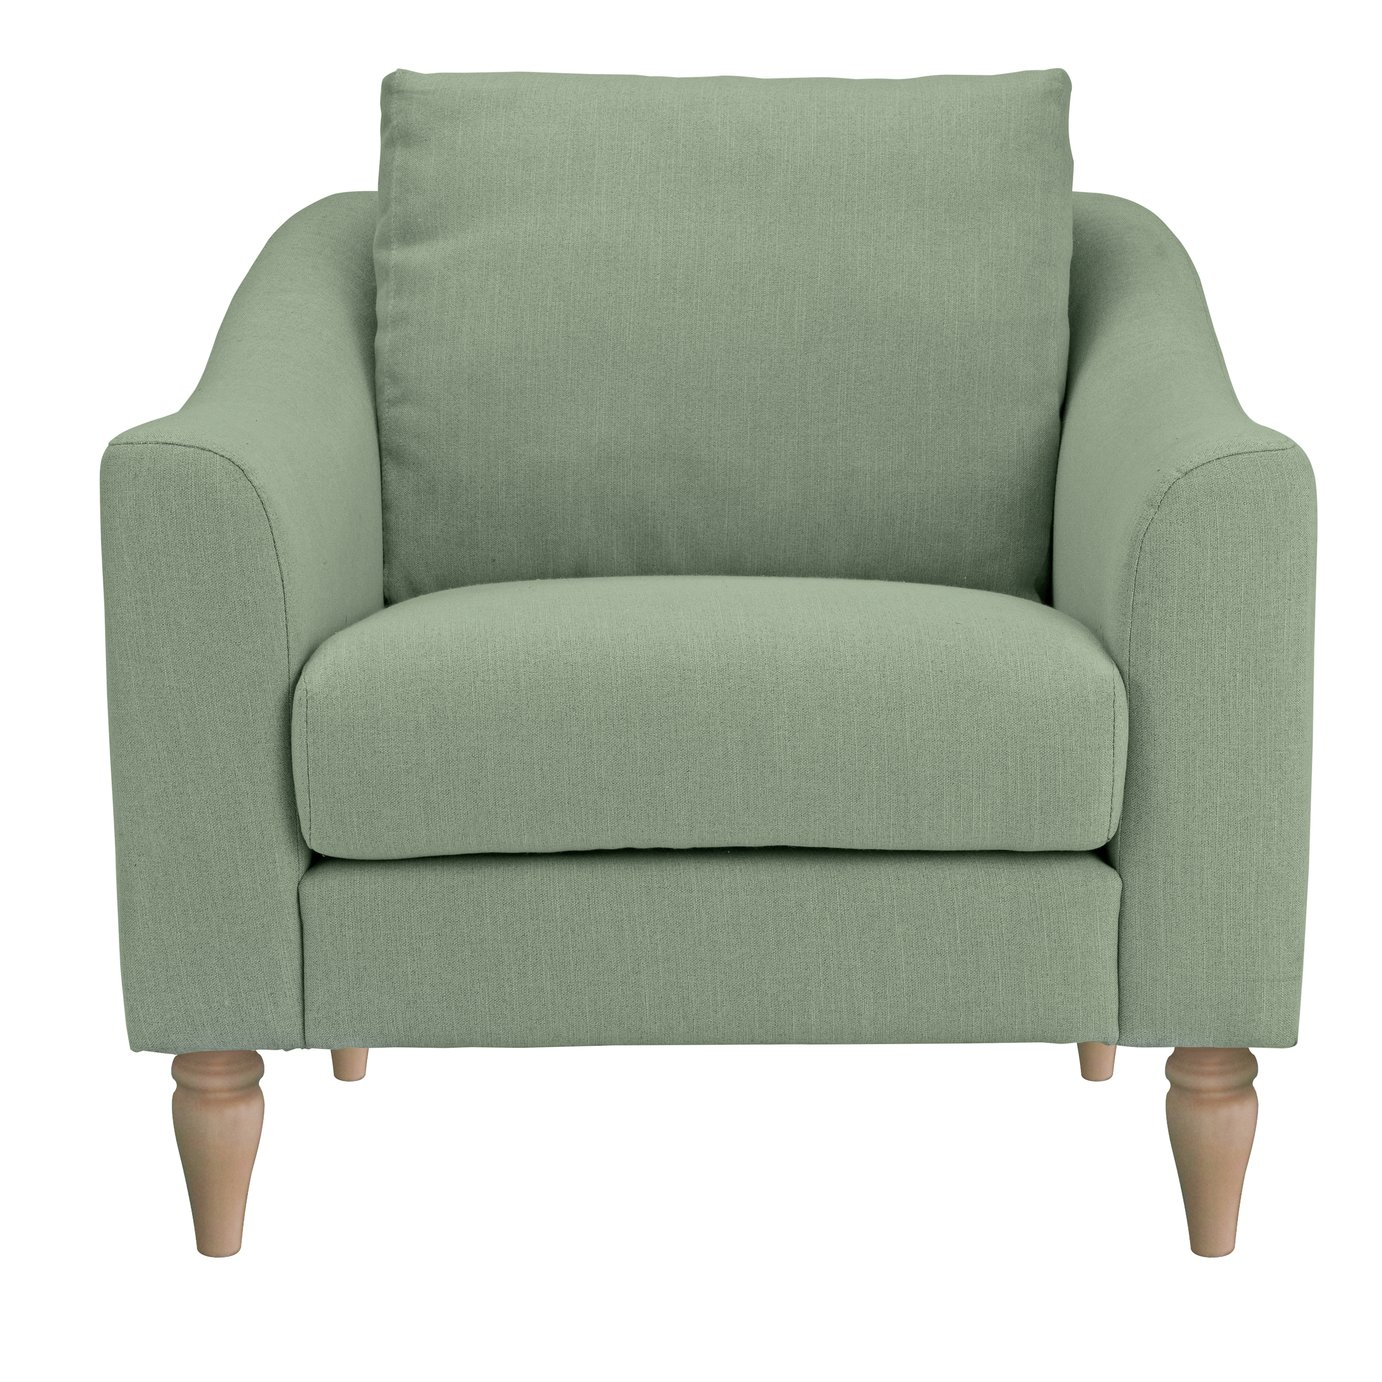 Argos Home Cameron Fabric Cuddle Chair - Sage